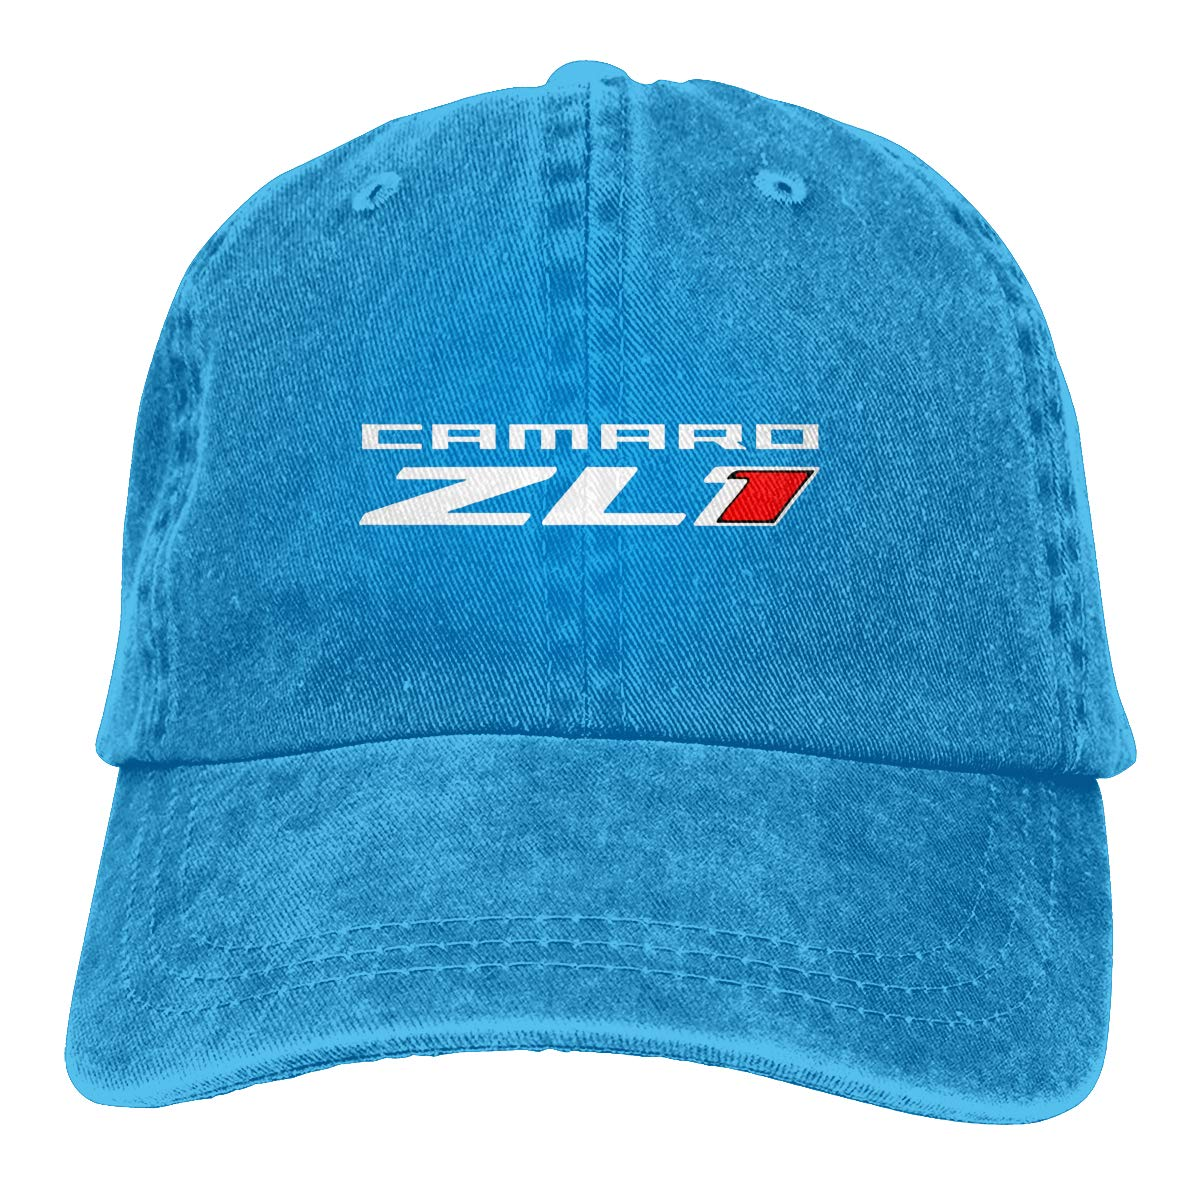 ORYISGAD Camaro ZL1 Sports Cap for Mens and Womens